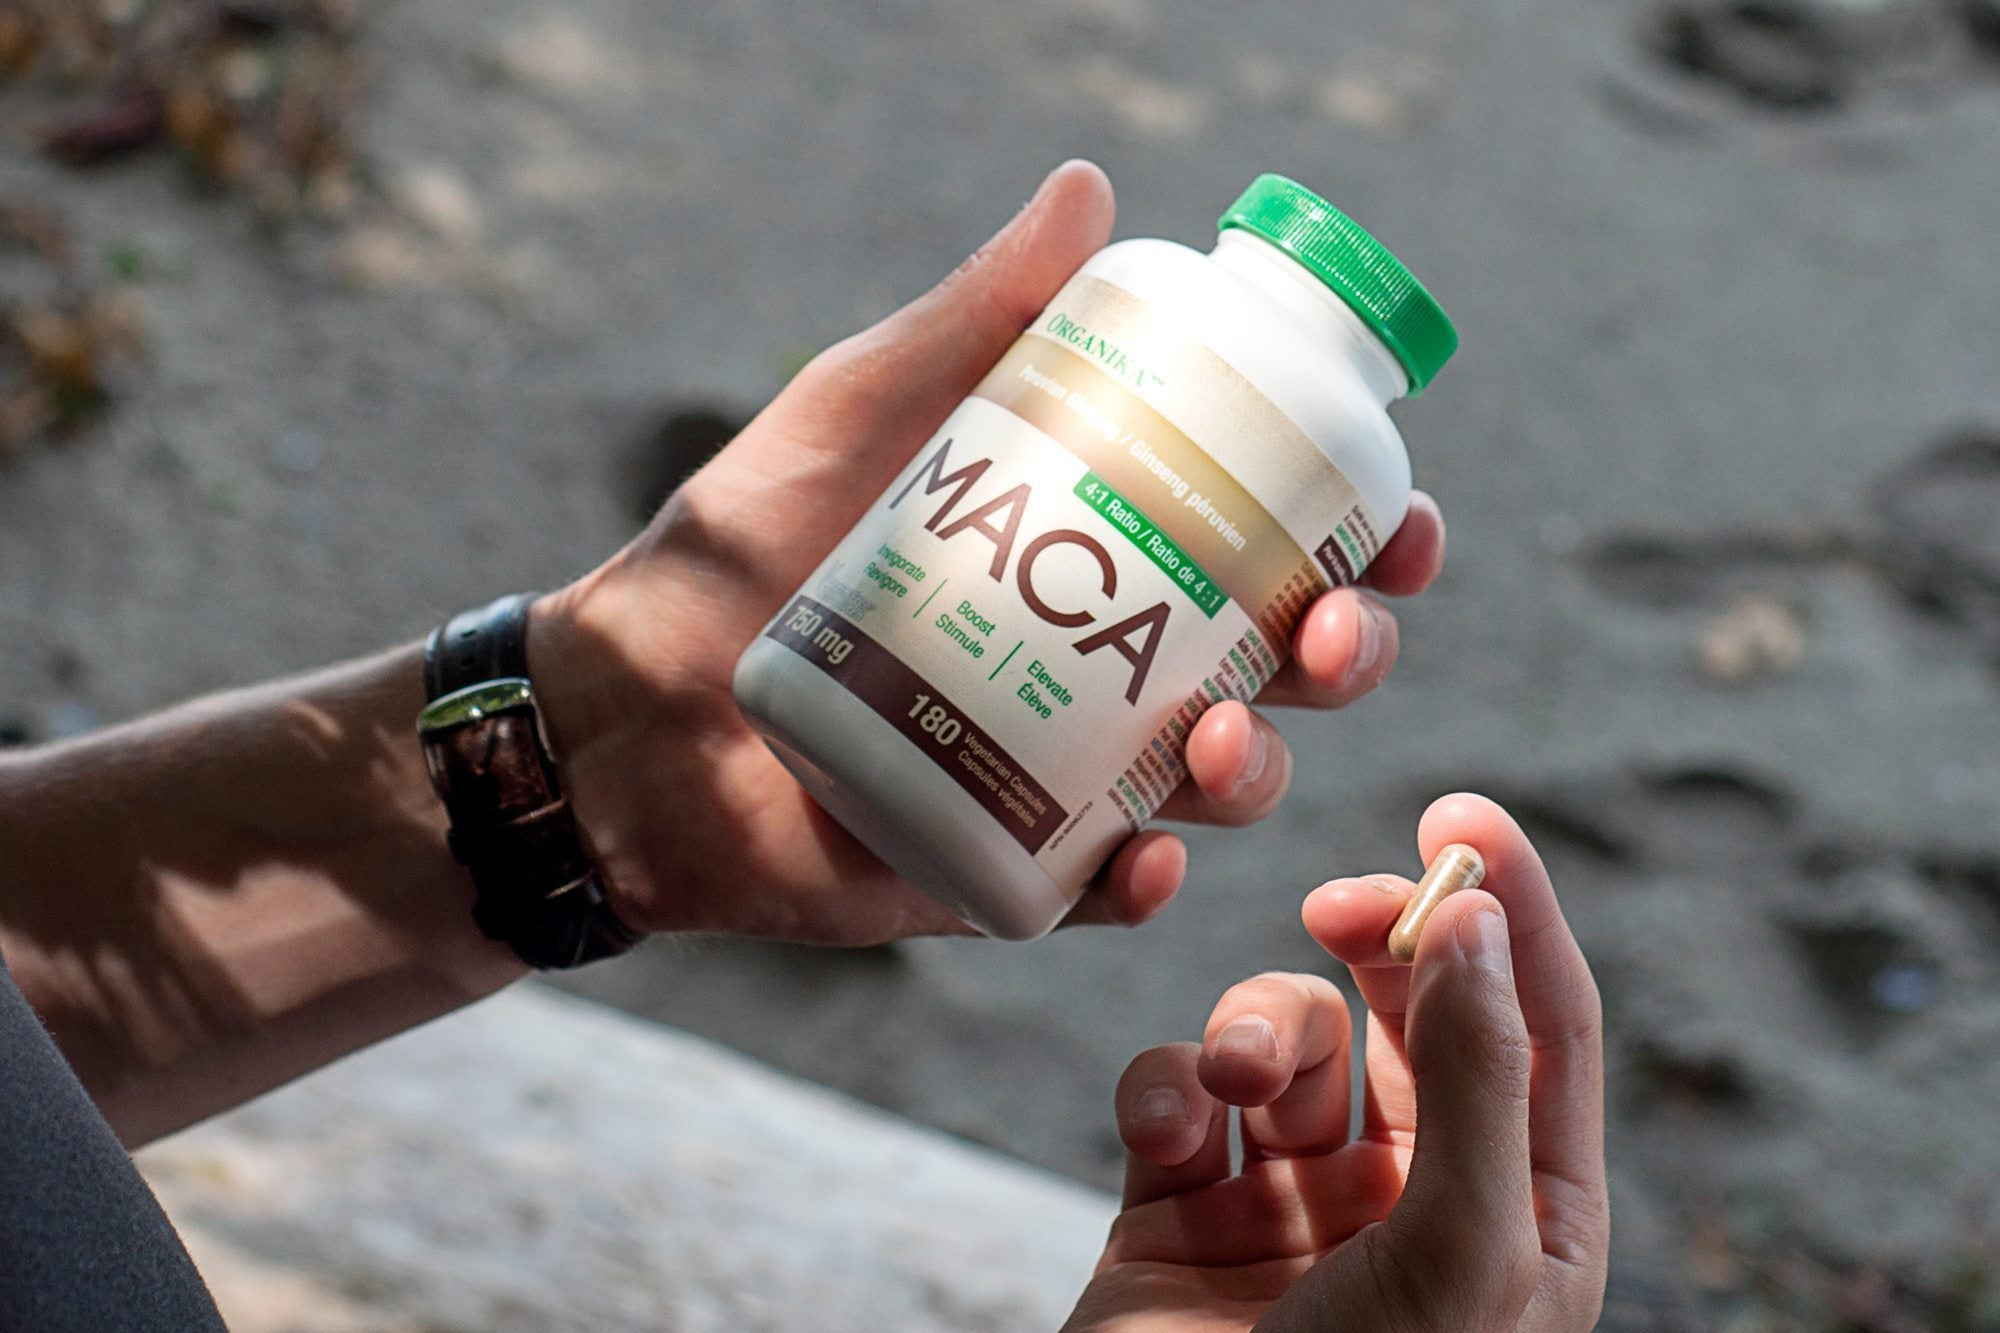 maca can help with low energy levels